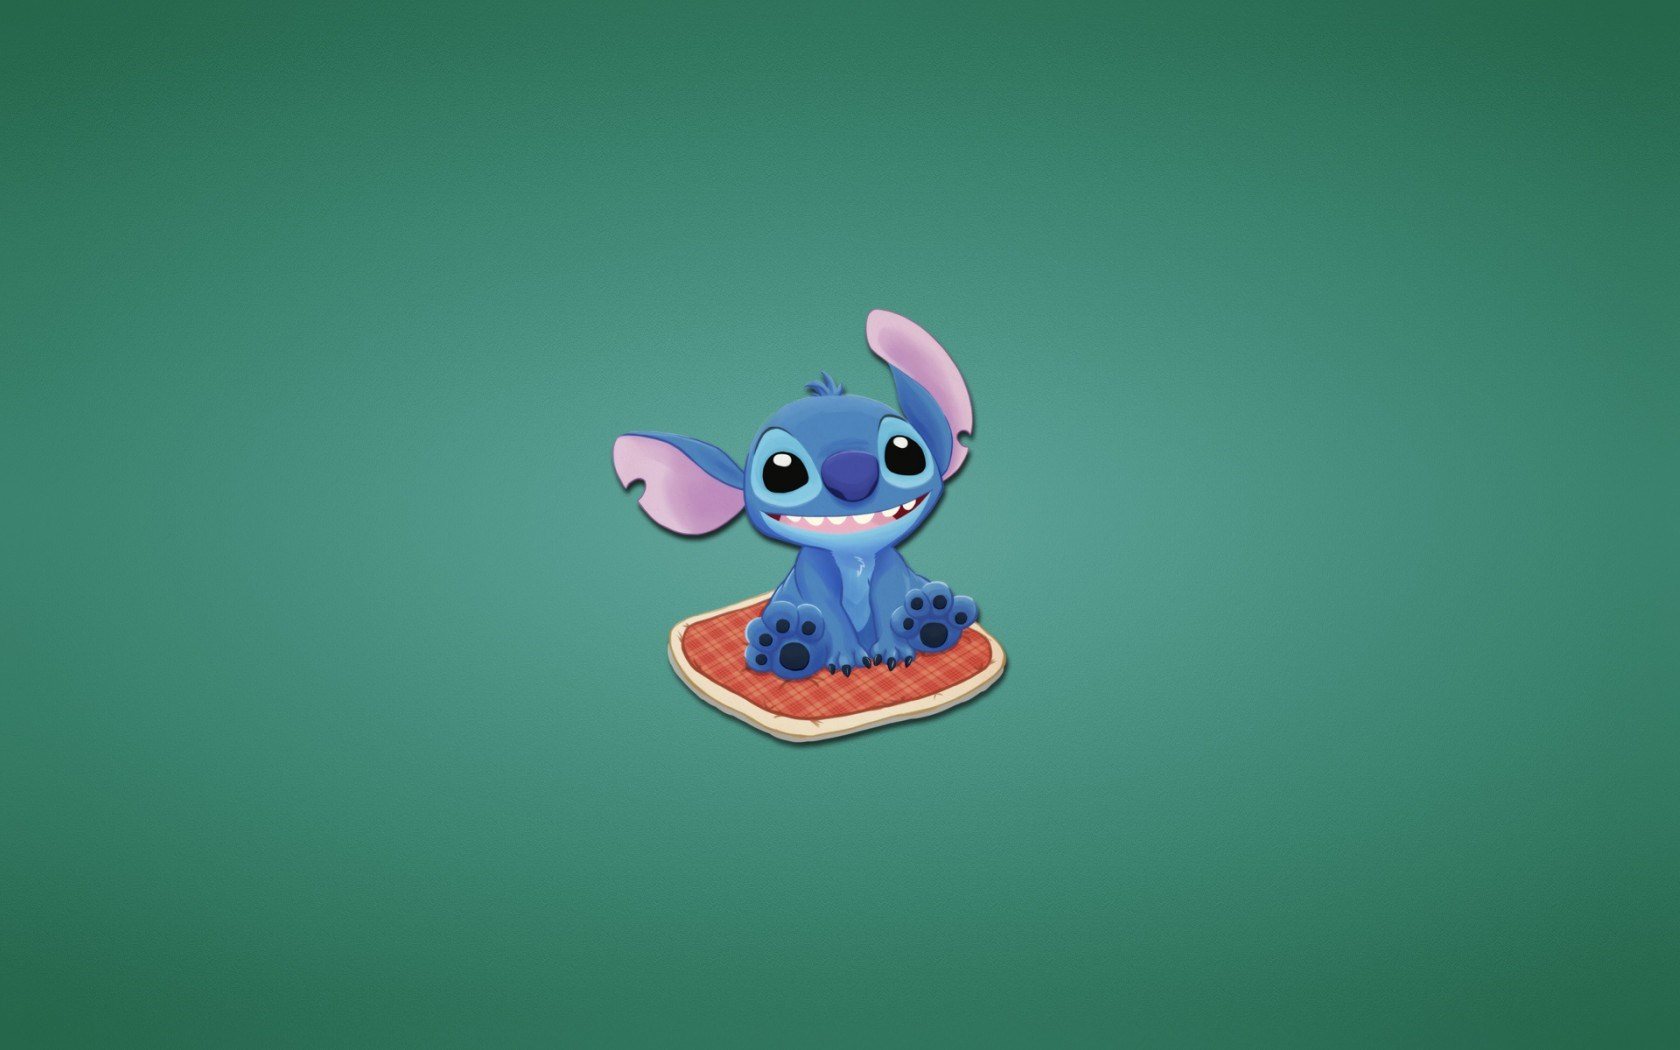 Wallpaper iphone stitch - Lilo And Stitch Wallpaper Hd For Iphone And Android Iphone2lovely